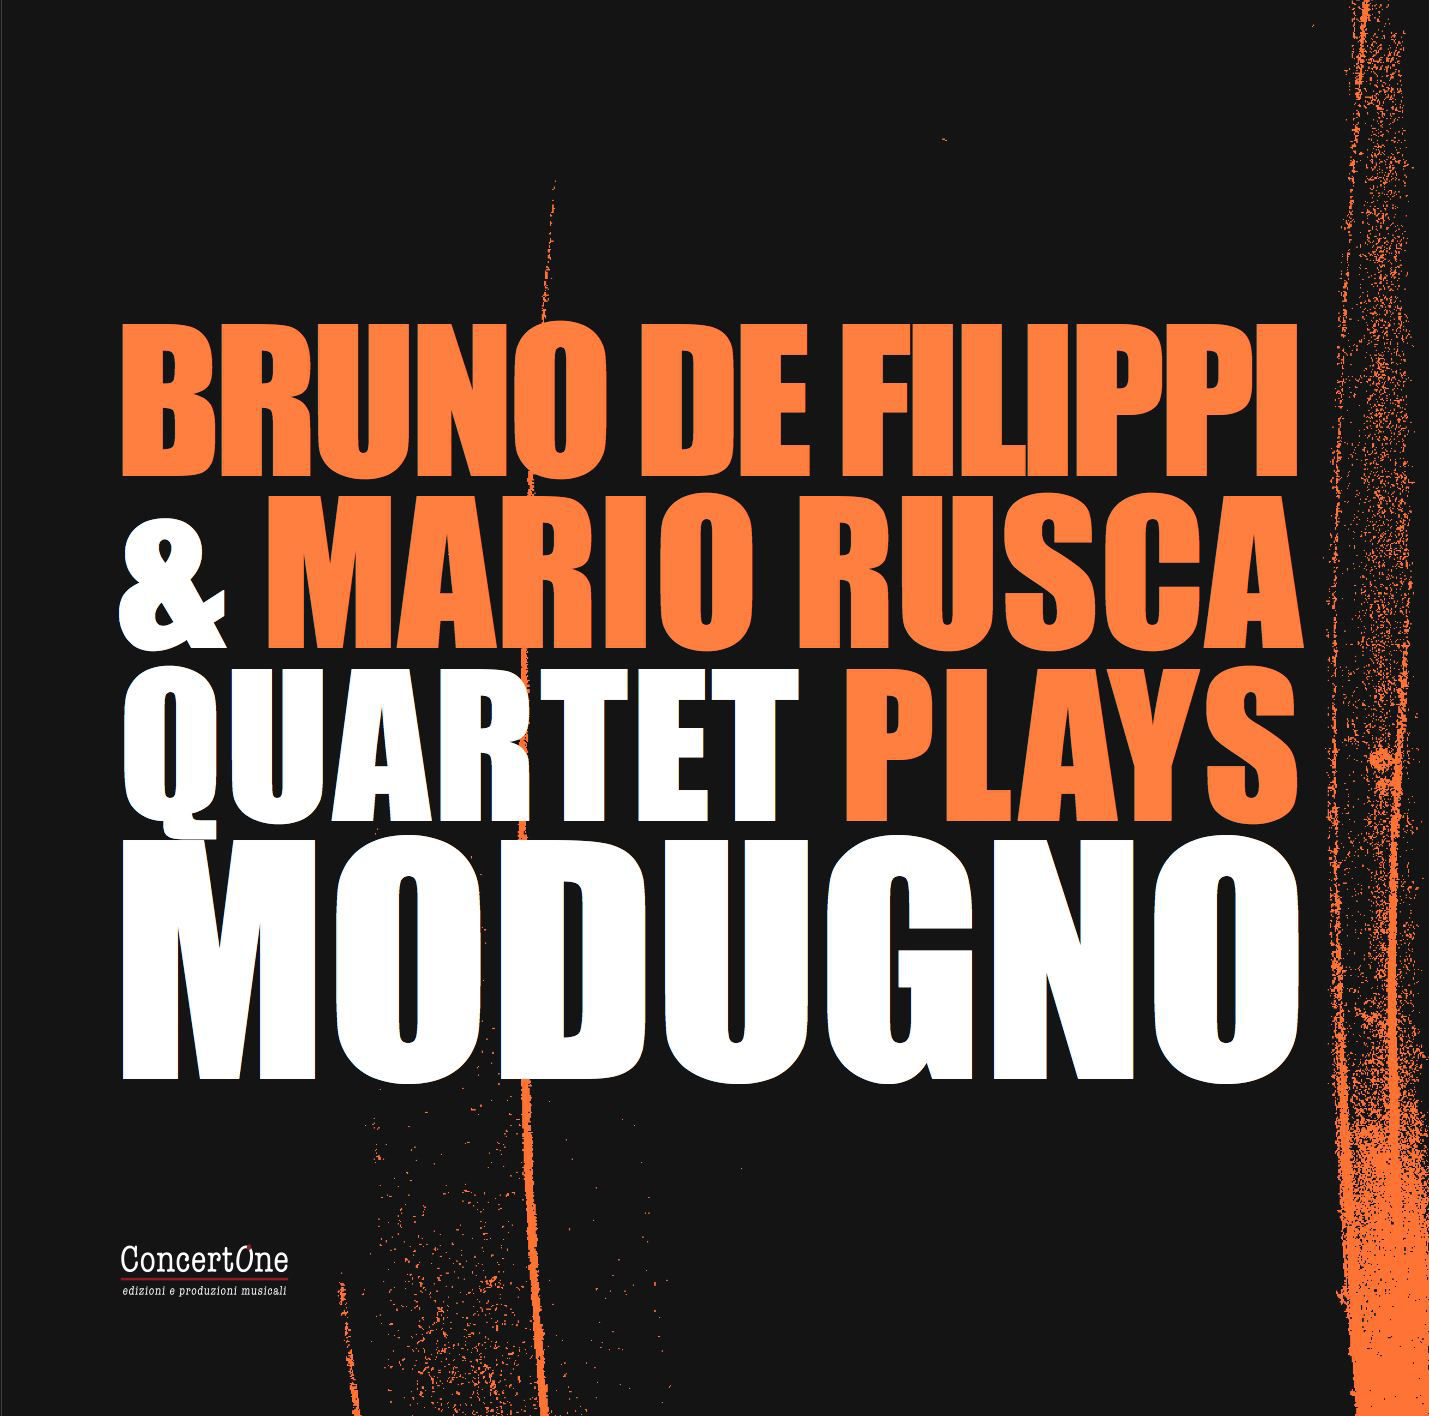 "BRUNO DE FILIPPI & MARIO RUSCA QUARTET ""PLAYS MODUGNO"""